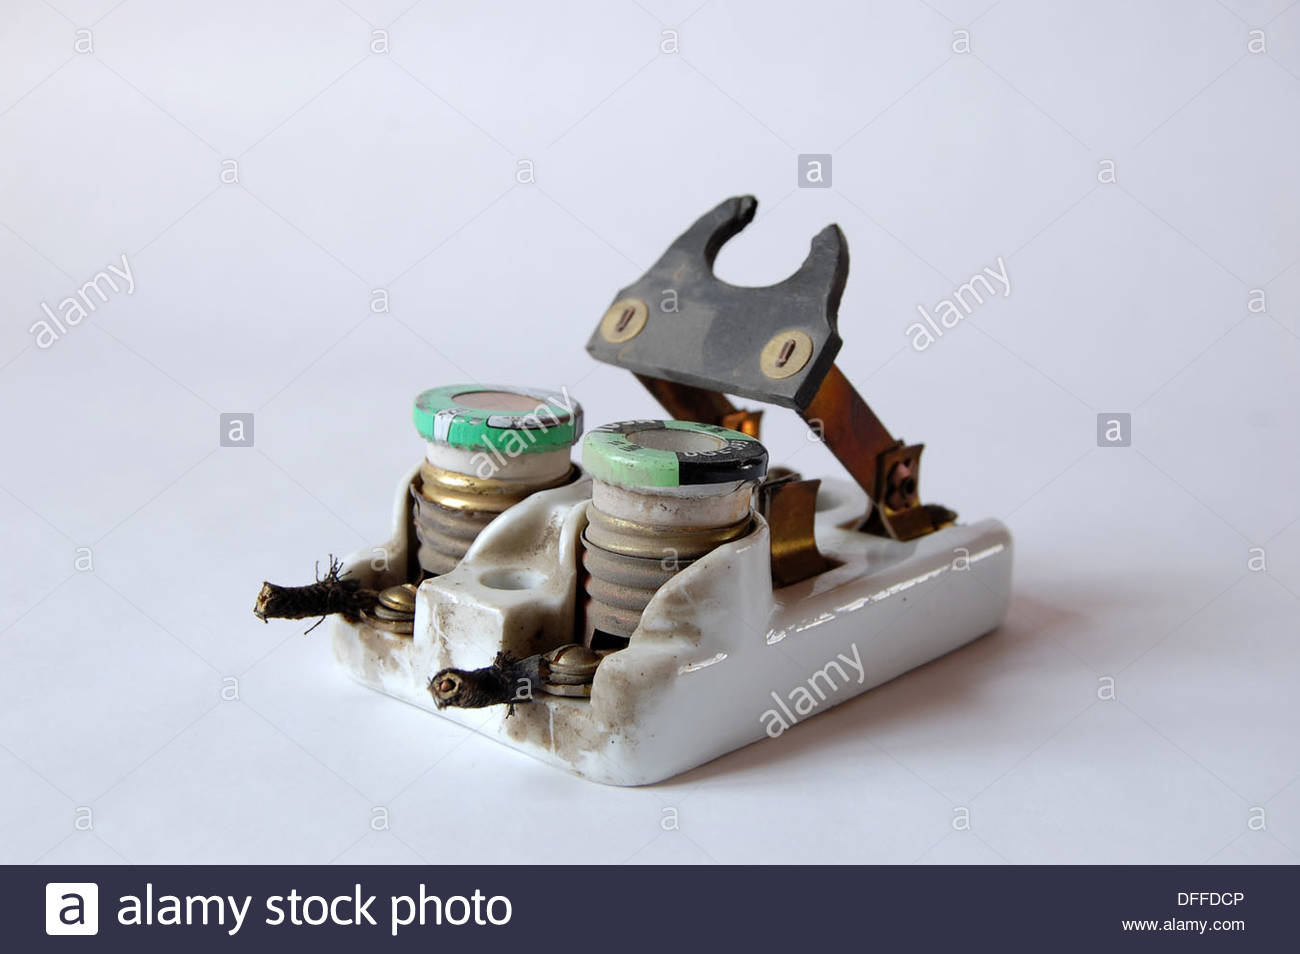 1950s vintage ceramic fuse box electrical circuit breaker with fuses rh alamy com Old Electrical Fuse Panels Electrical Fuse Box